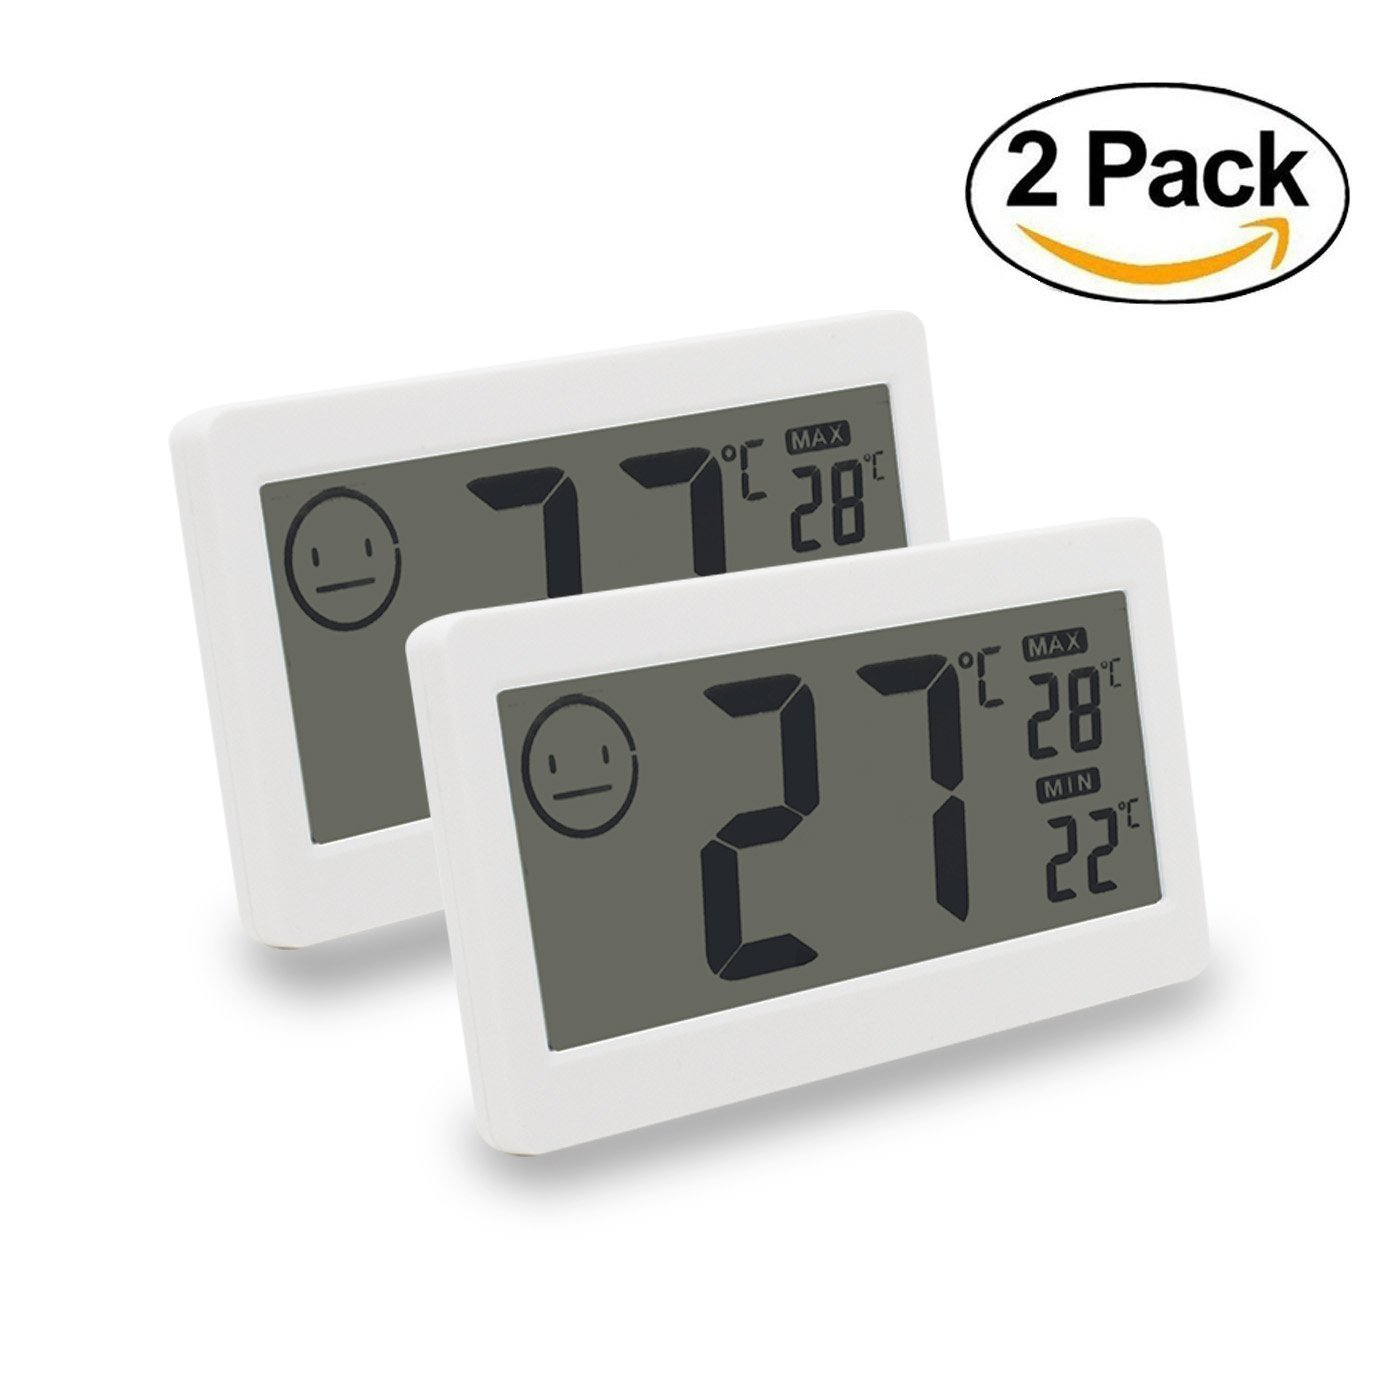 MIKIZ Digital Thermometer Hygrometer Temperature and Humidity Display with 3.3 inch LCD for Household Office Gym Kitchen etc by (2 Pack)